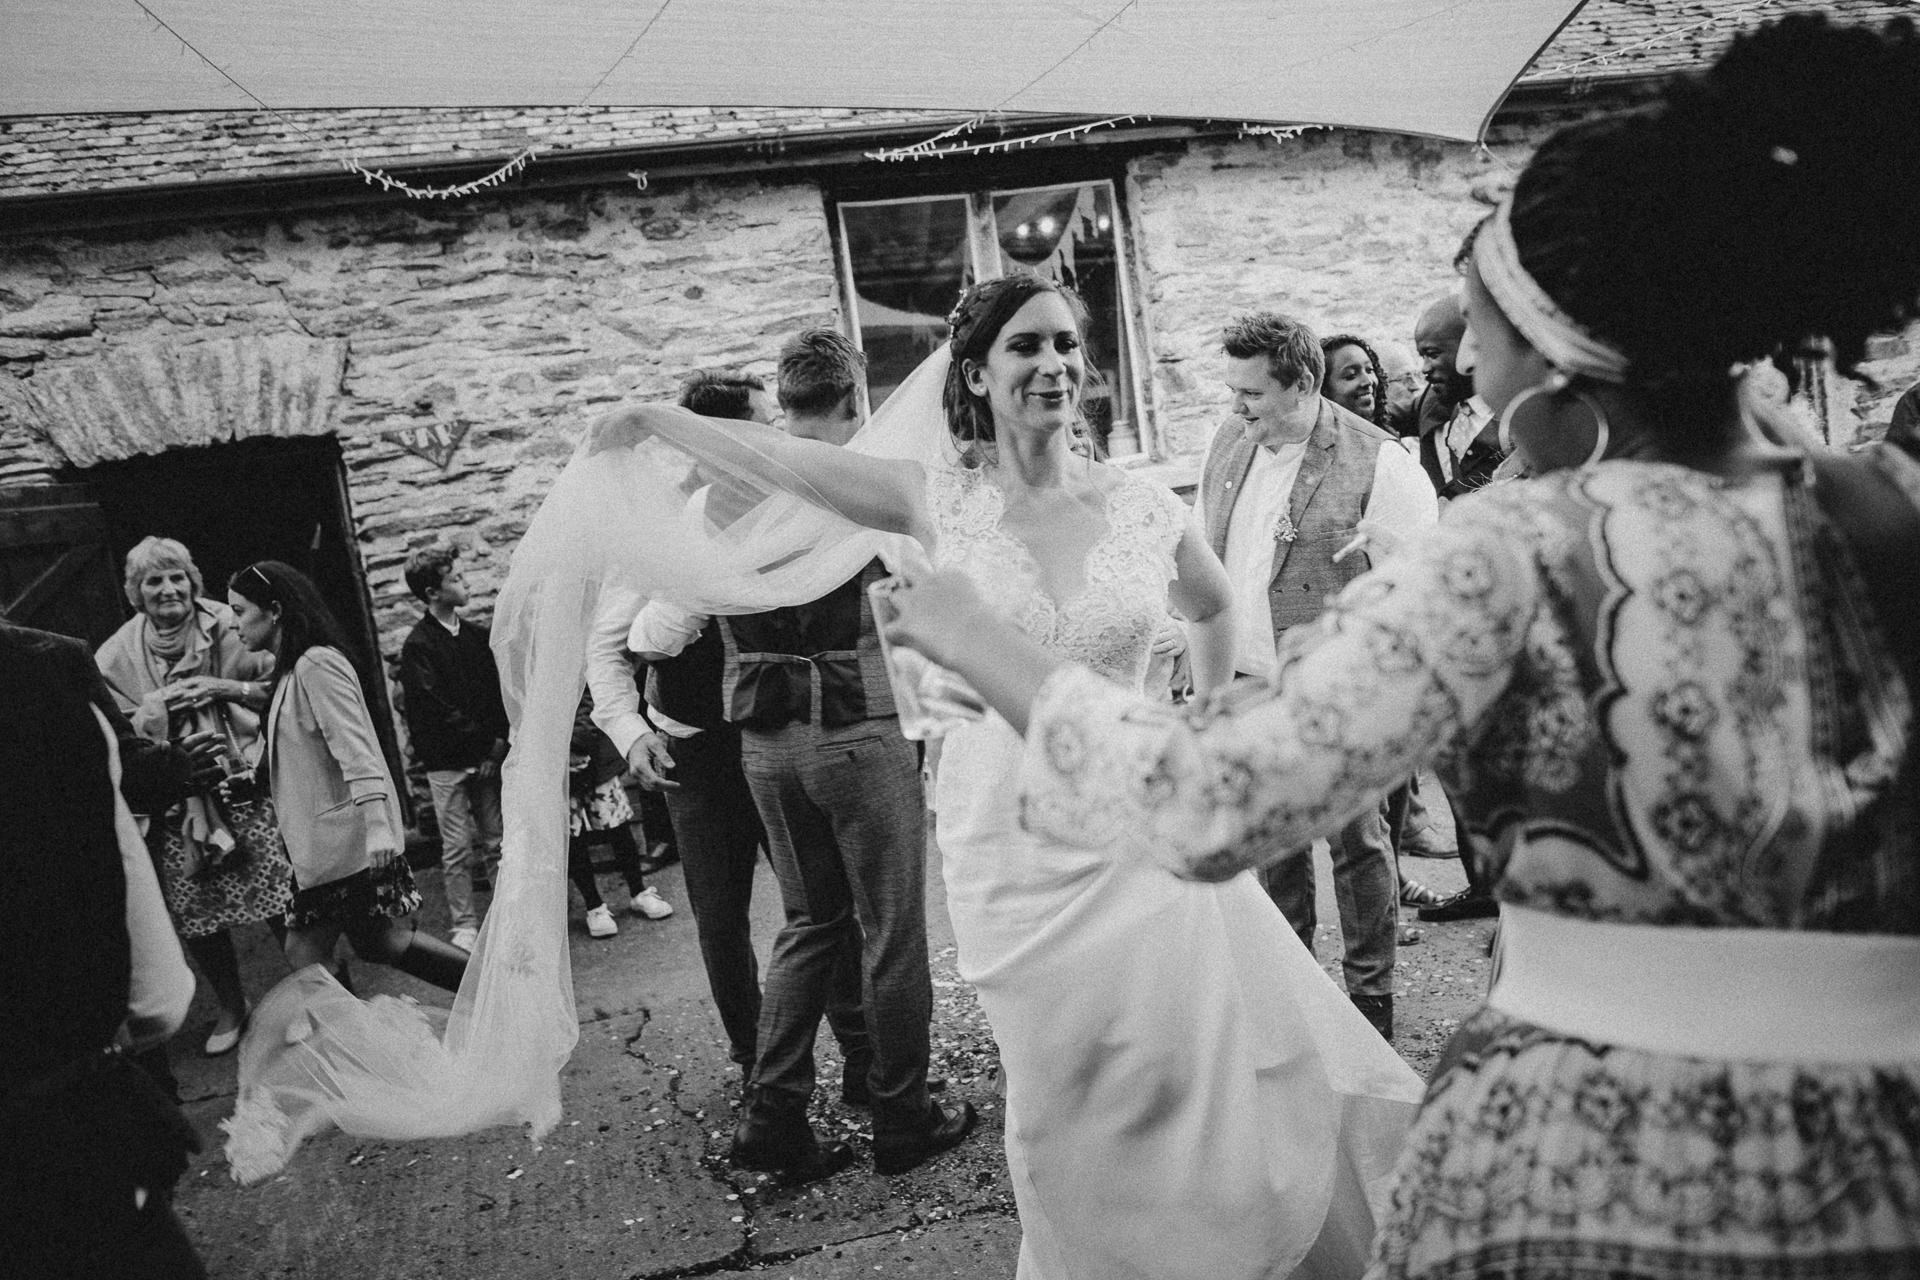 0077-DEVON-SOMERSET-WEDDING-PHOTOGRAPHER-0017-BEST-OF-2019-LOUISE-MAY-DEVON-SOMERSET-WEDDING-PHOTOGRAPHY-LM2_0287